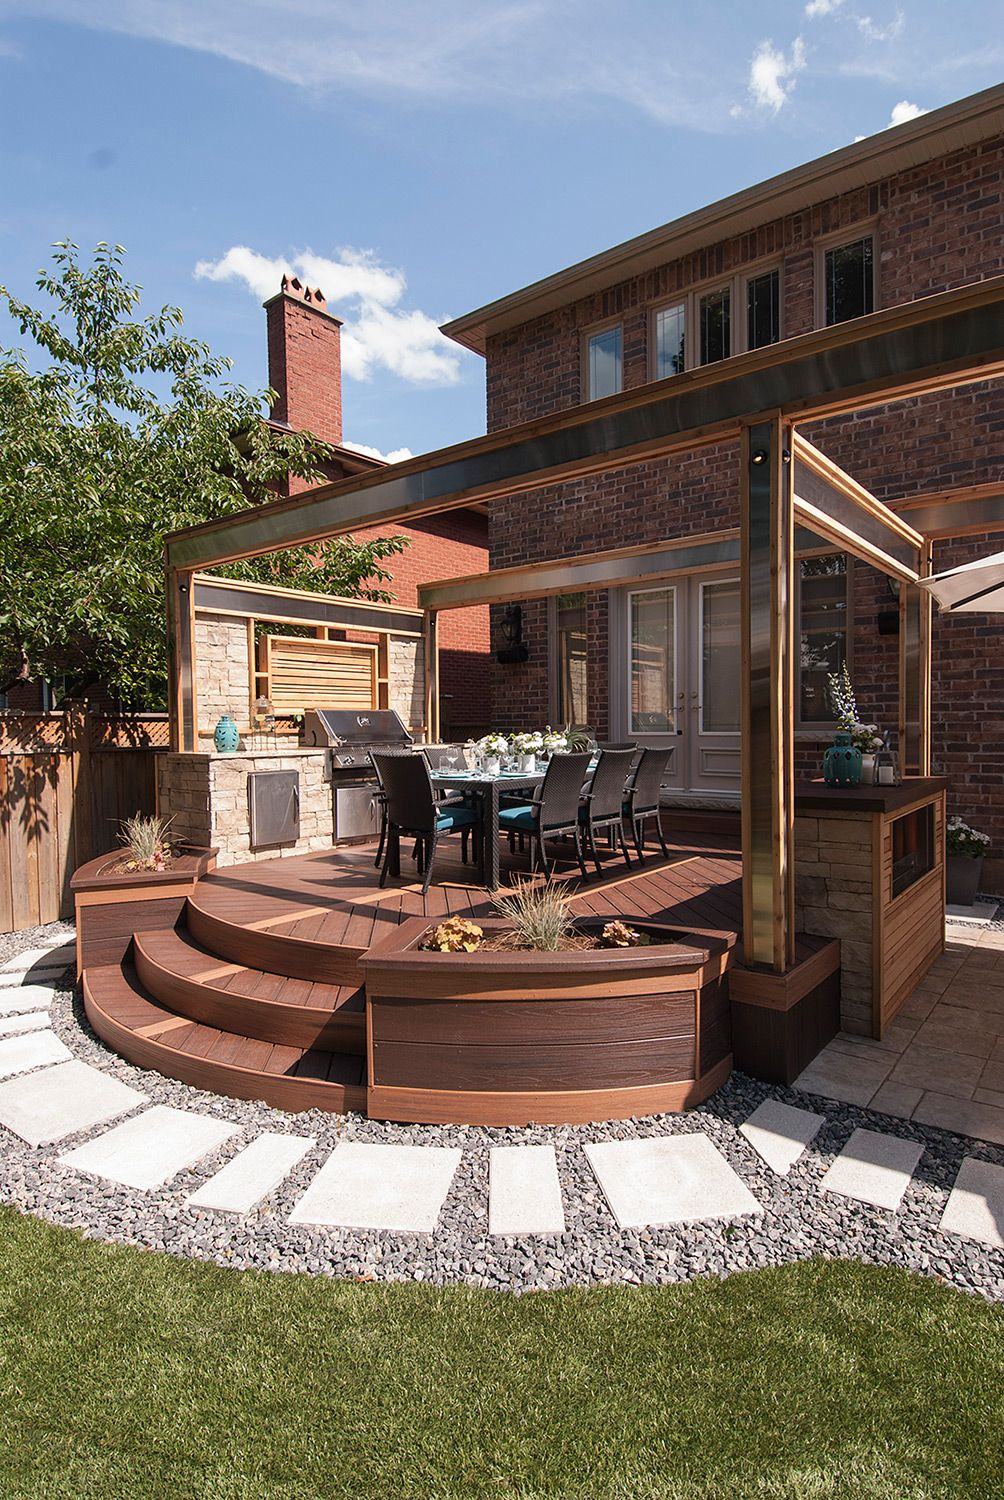 Amenagement Exterieur Coin Barbecue Impressionnant Photographie Check Out This Stunning Outdoor Bbq area Outdoor Bbqs